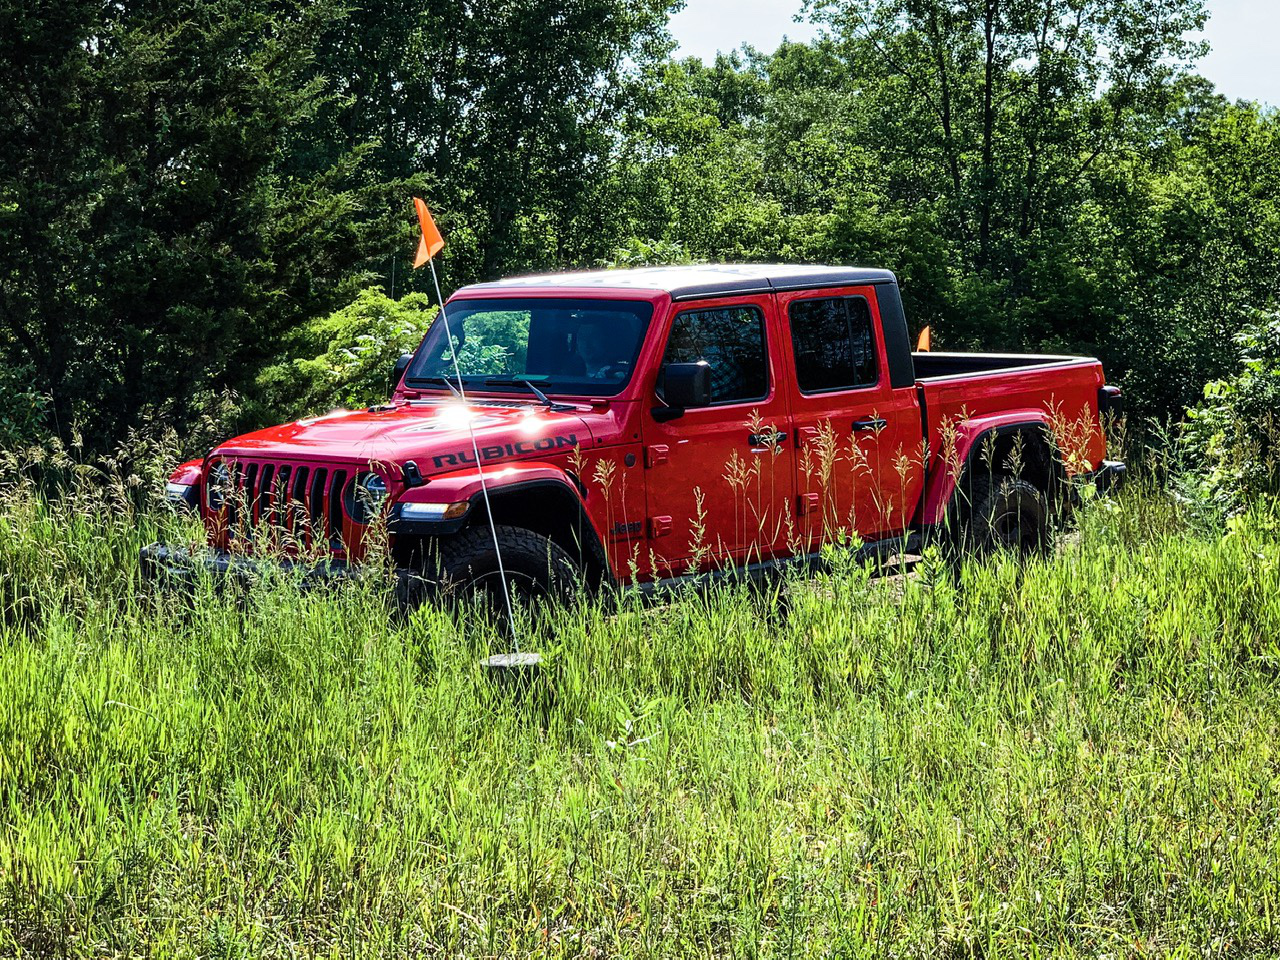 Test Drive: The Jeep Gladiator is a great truck. But is it enough truck?